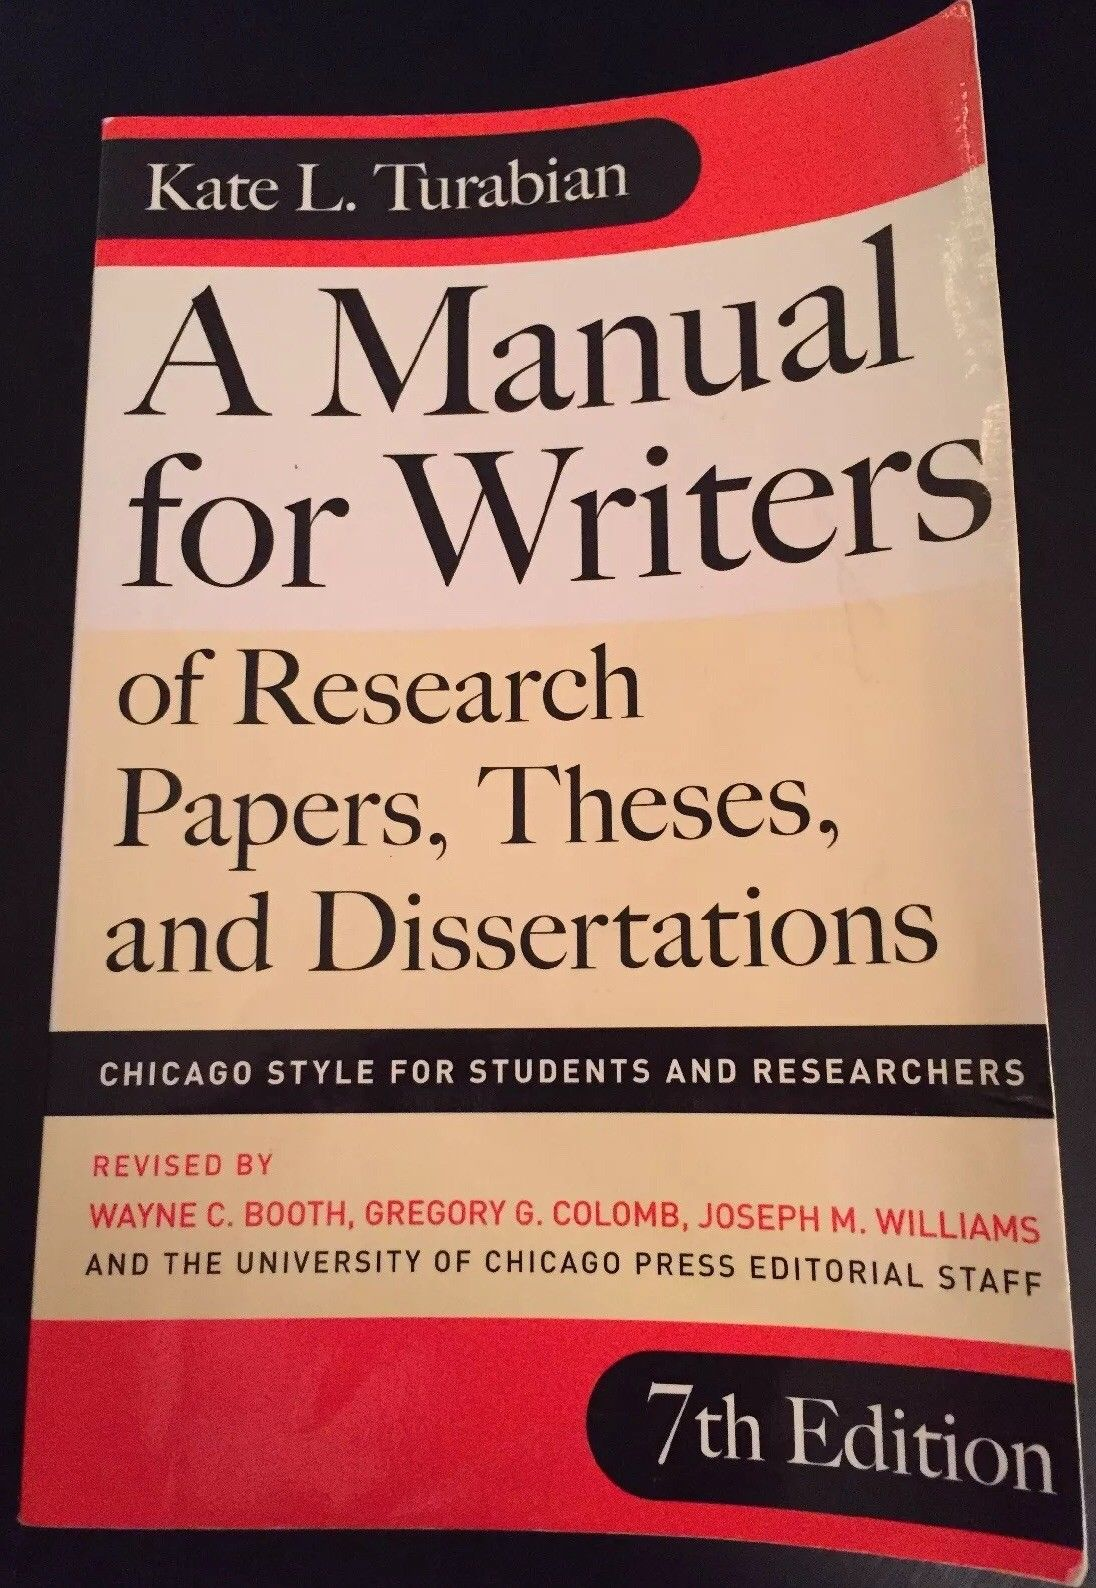 018 Research Paper Manual For Writers Of Papers Theses And Dissertations S Magnificent 8th 13 A 9th Edition Apa Full